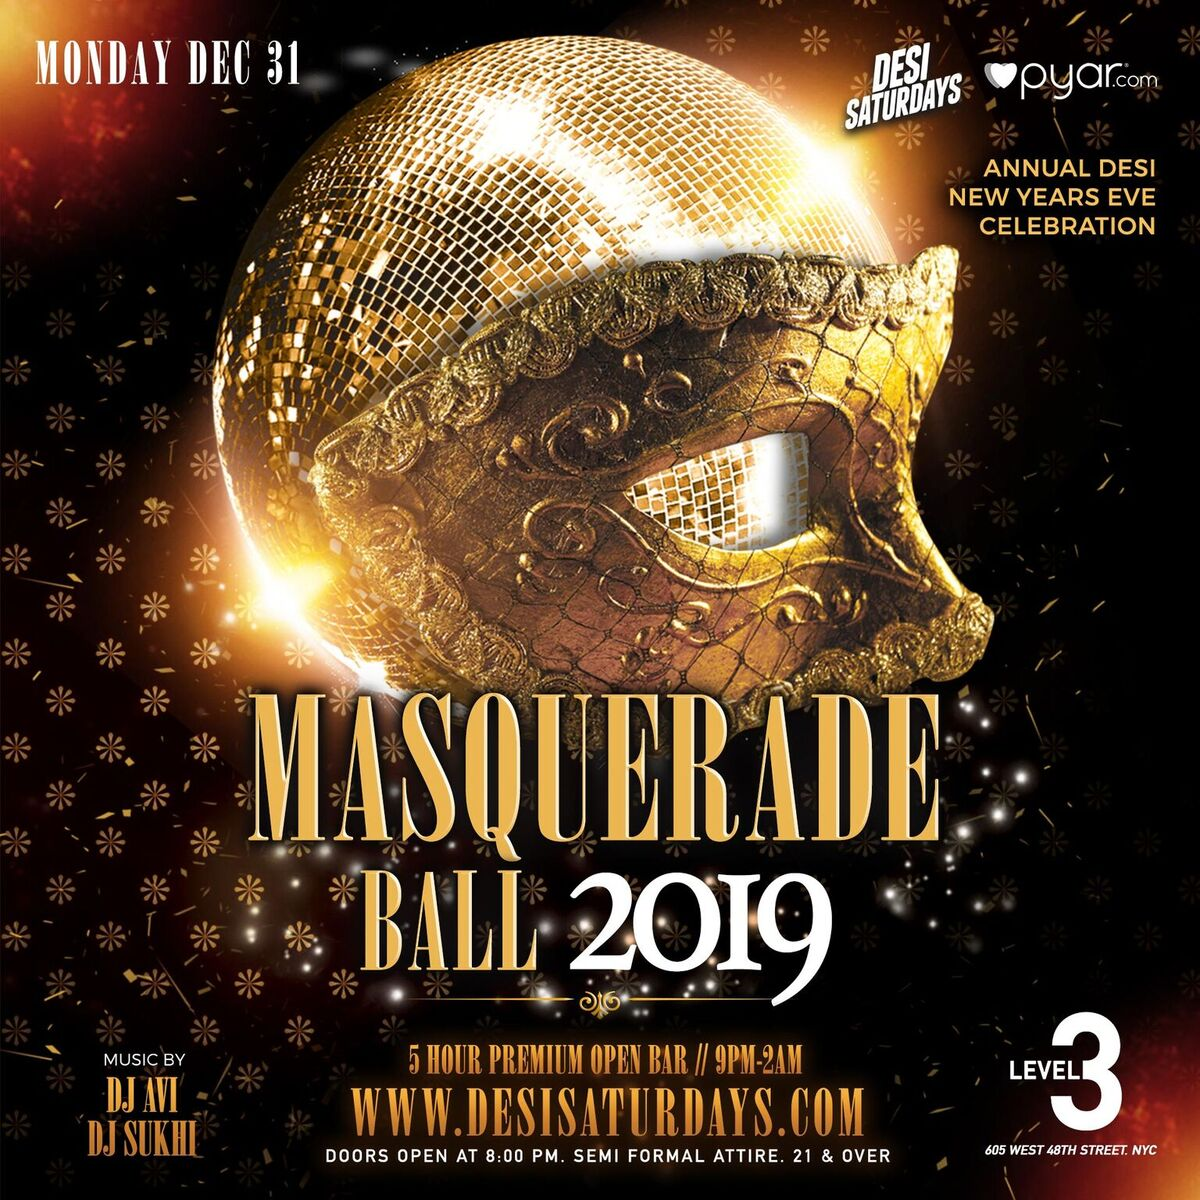 9600fbc4e3 Masquerade Ball 2019 Desi New Years Eve Celebration New York in ...